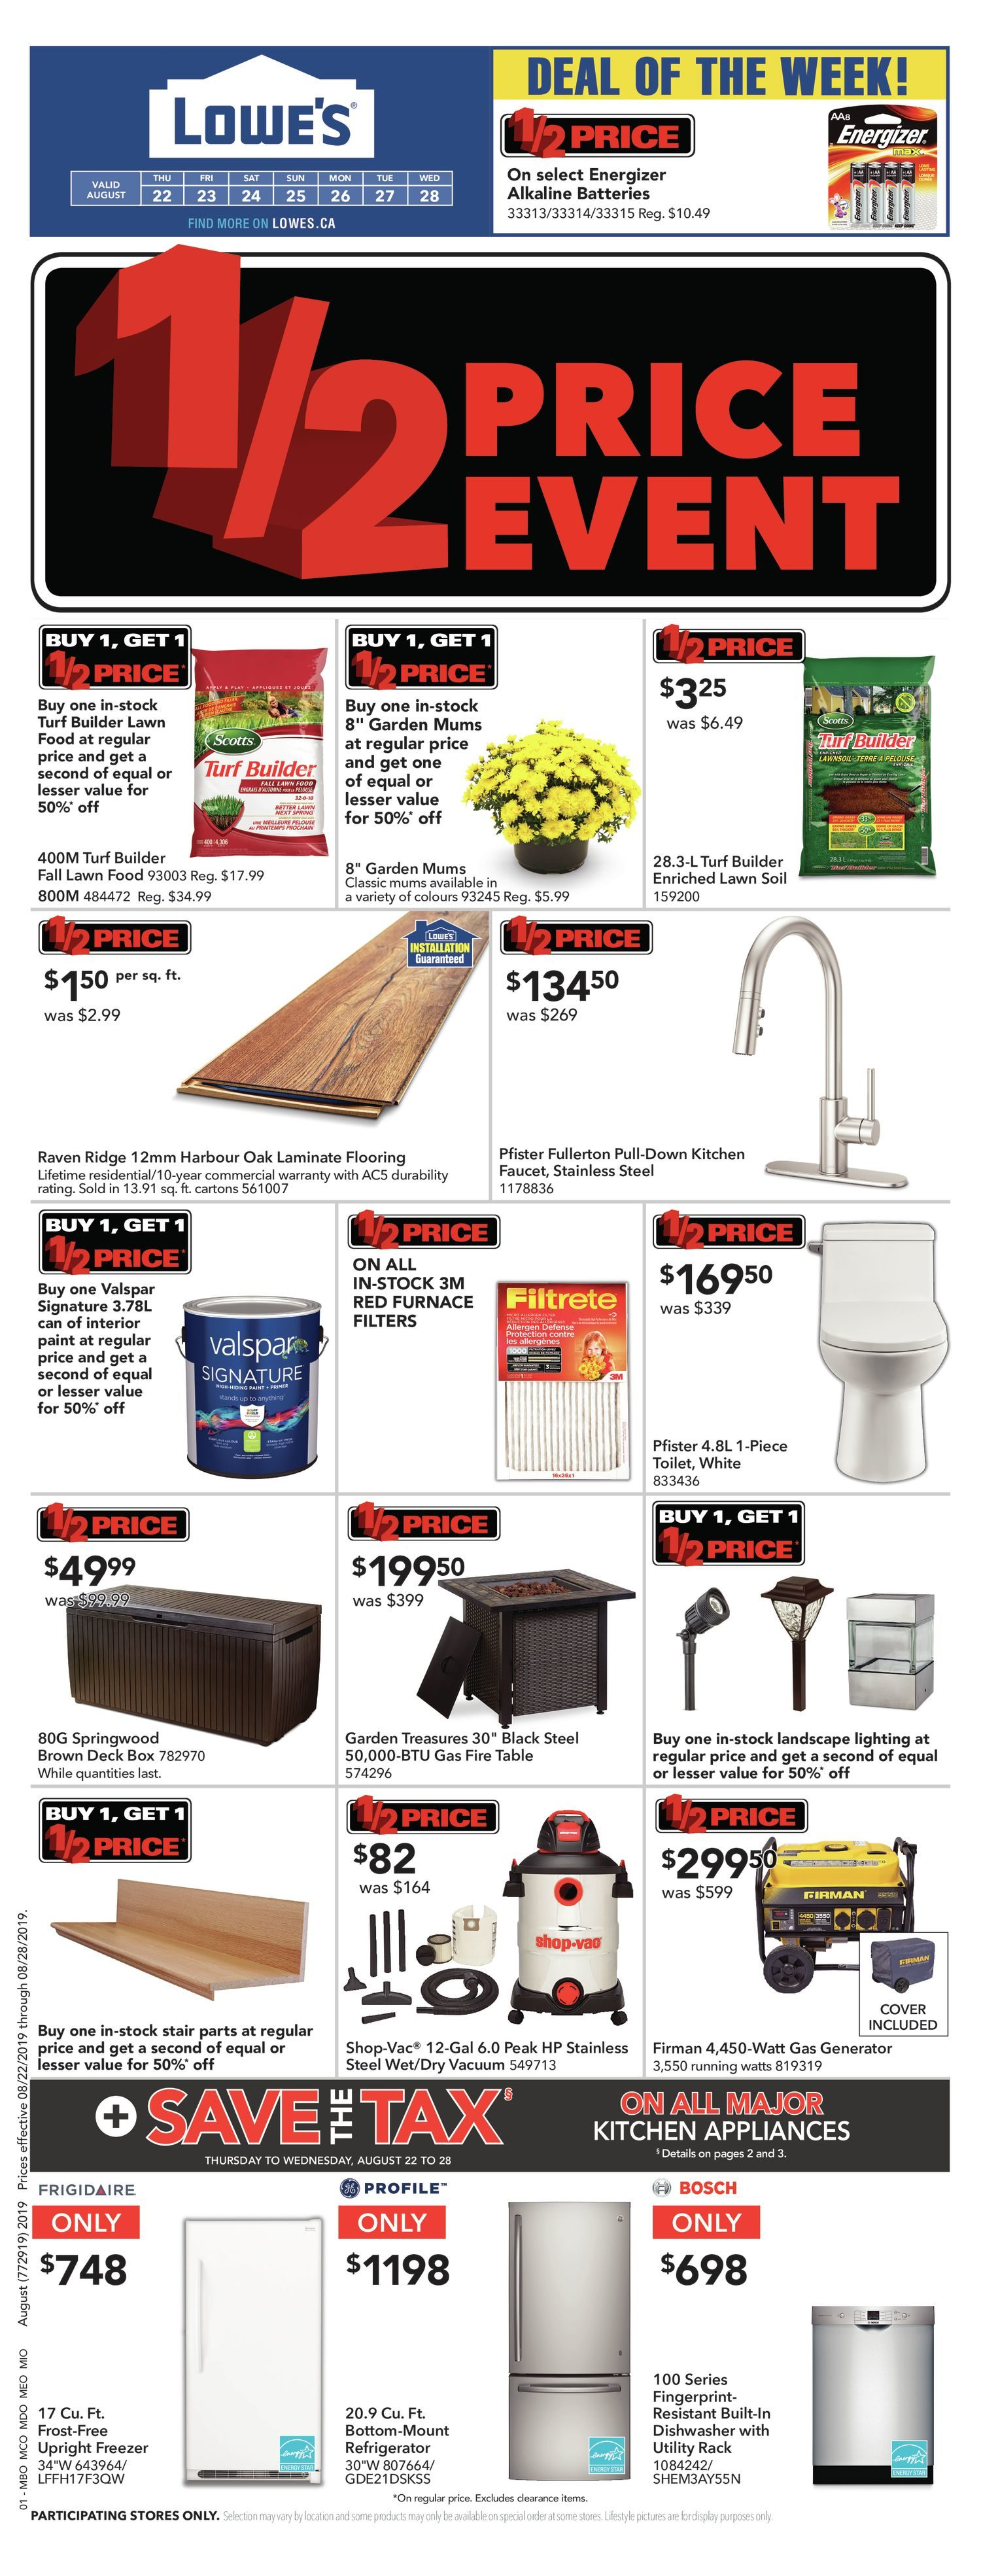 Lowe's Weekly Flyer - Weekly - 1/2 Price Event - Aug 22 – 28